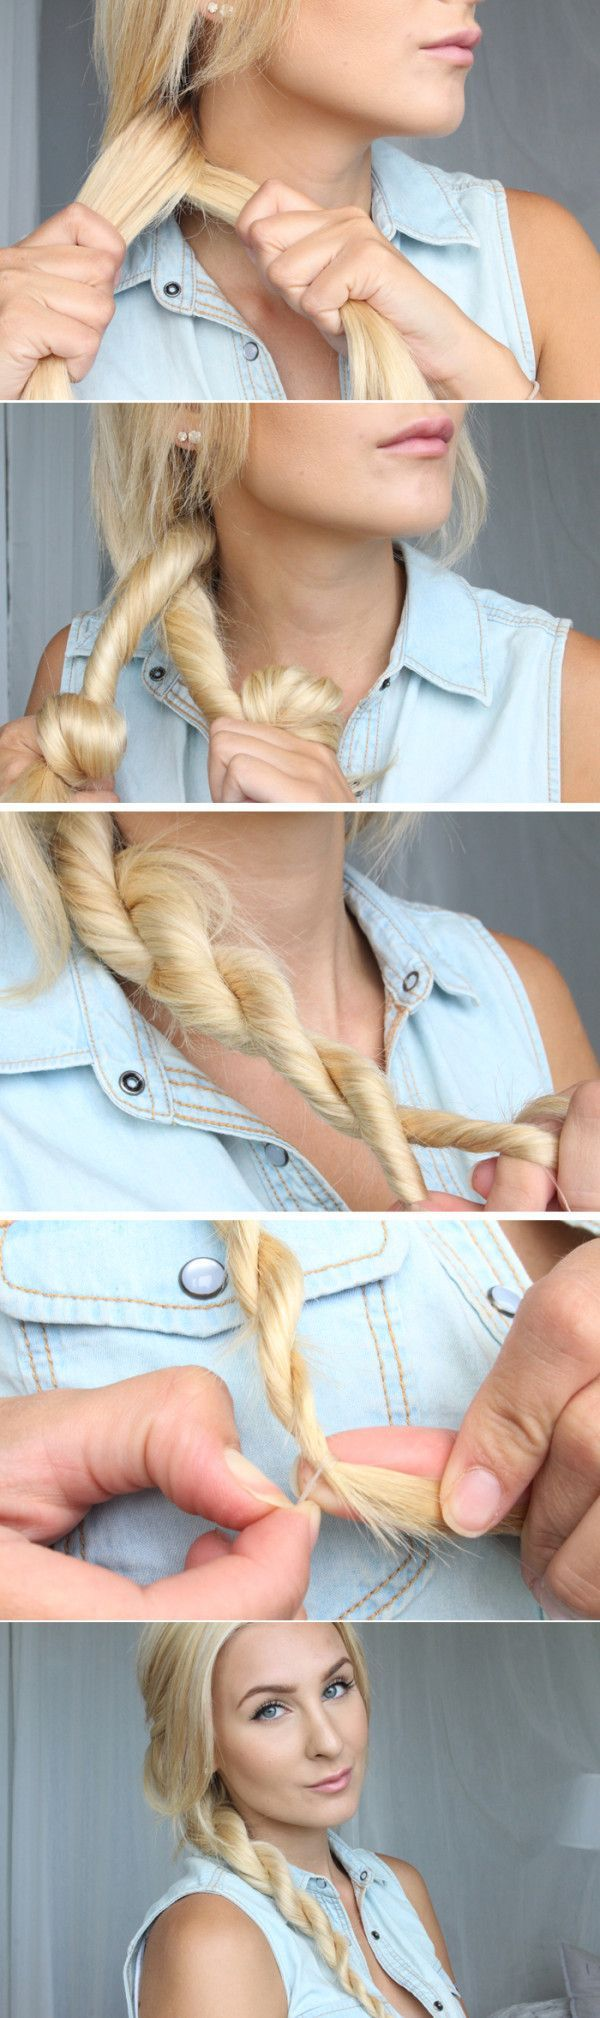 16 Amazing Hairstyle DIY Ideas For Lazy Girls Ready For Less Than a Minute... - http://1pic4u.com/2015/08/30/16-amazing-hairstyle-diy-ideas-for-lazy-girls-ready-for-less-than-a-minute/  Hier findet ihr ALLES rund um das Thema Beauty und Wellness. Wir suchen für euch die neusten Trends und Techniken heraus . https://e1j.de/BuAj